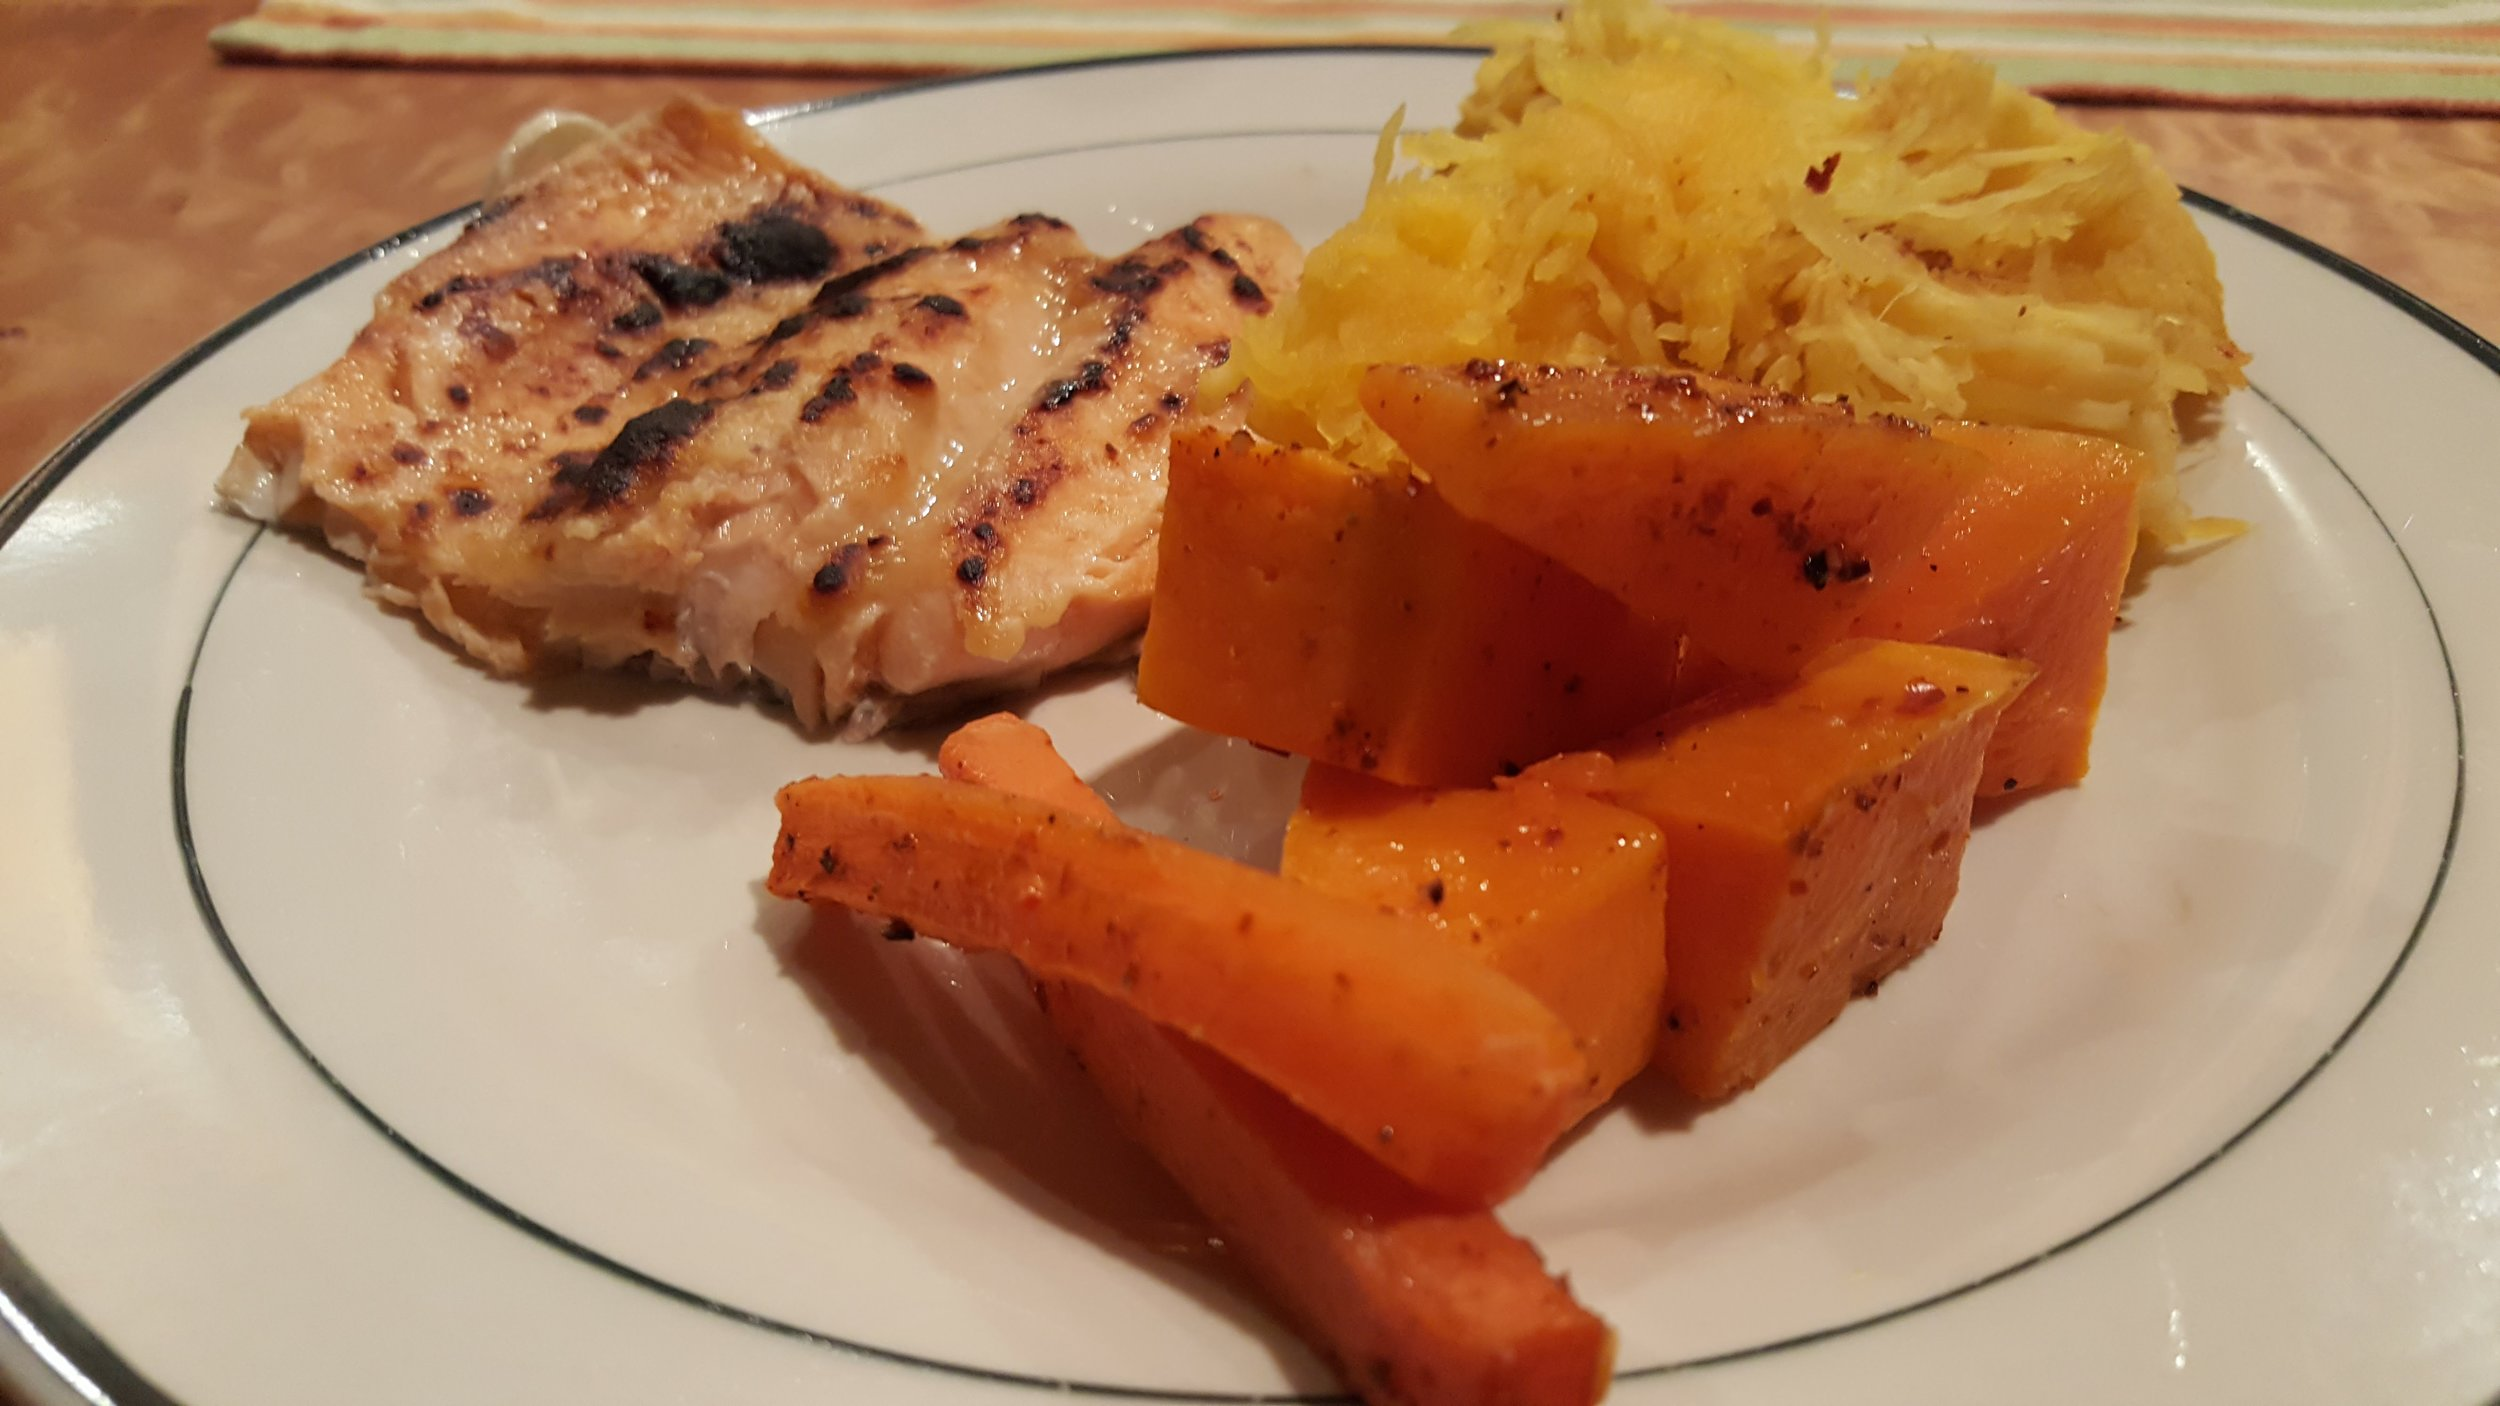 miso glazed trout, roasted carrots and spaghetti squash